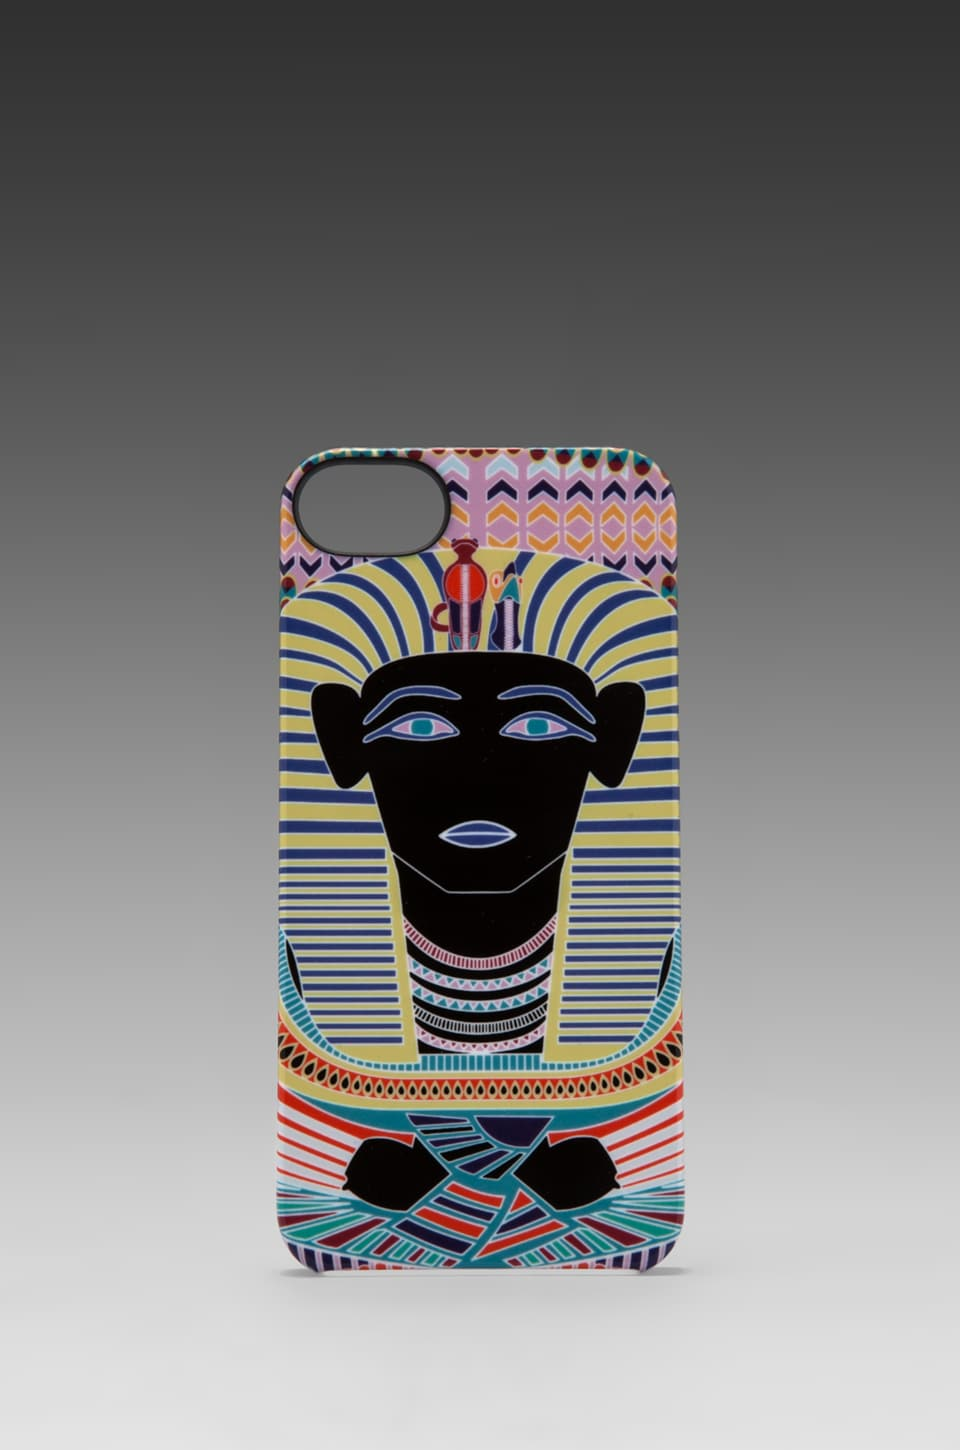 INCASE Mara Hoffman iPhone 5 Snap Case in King Tut/Pink